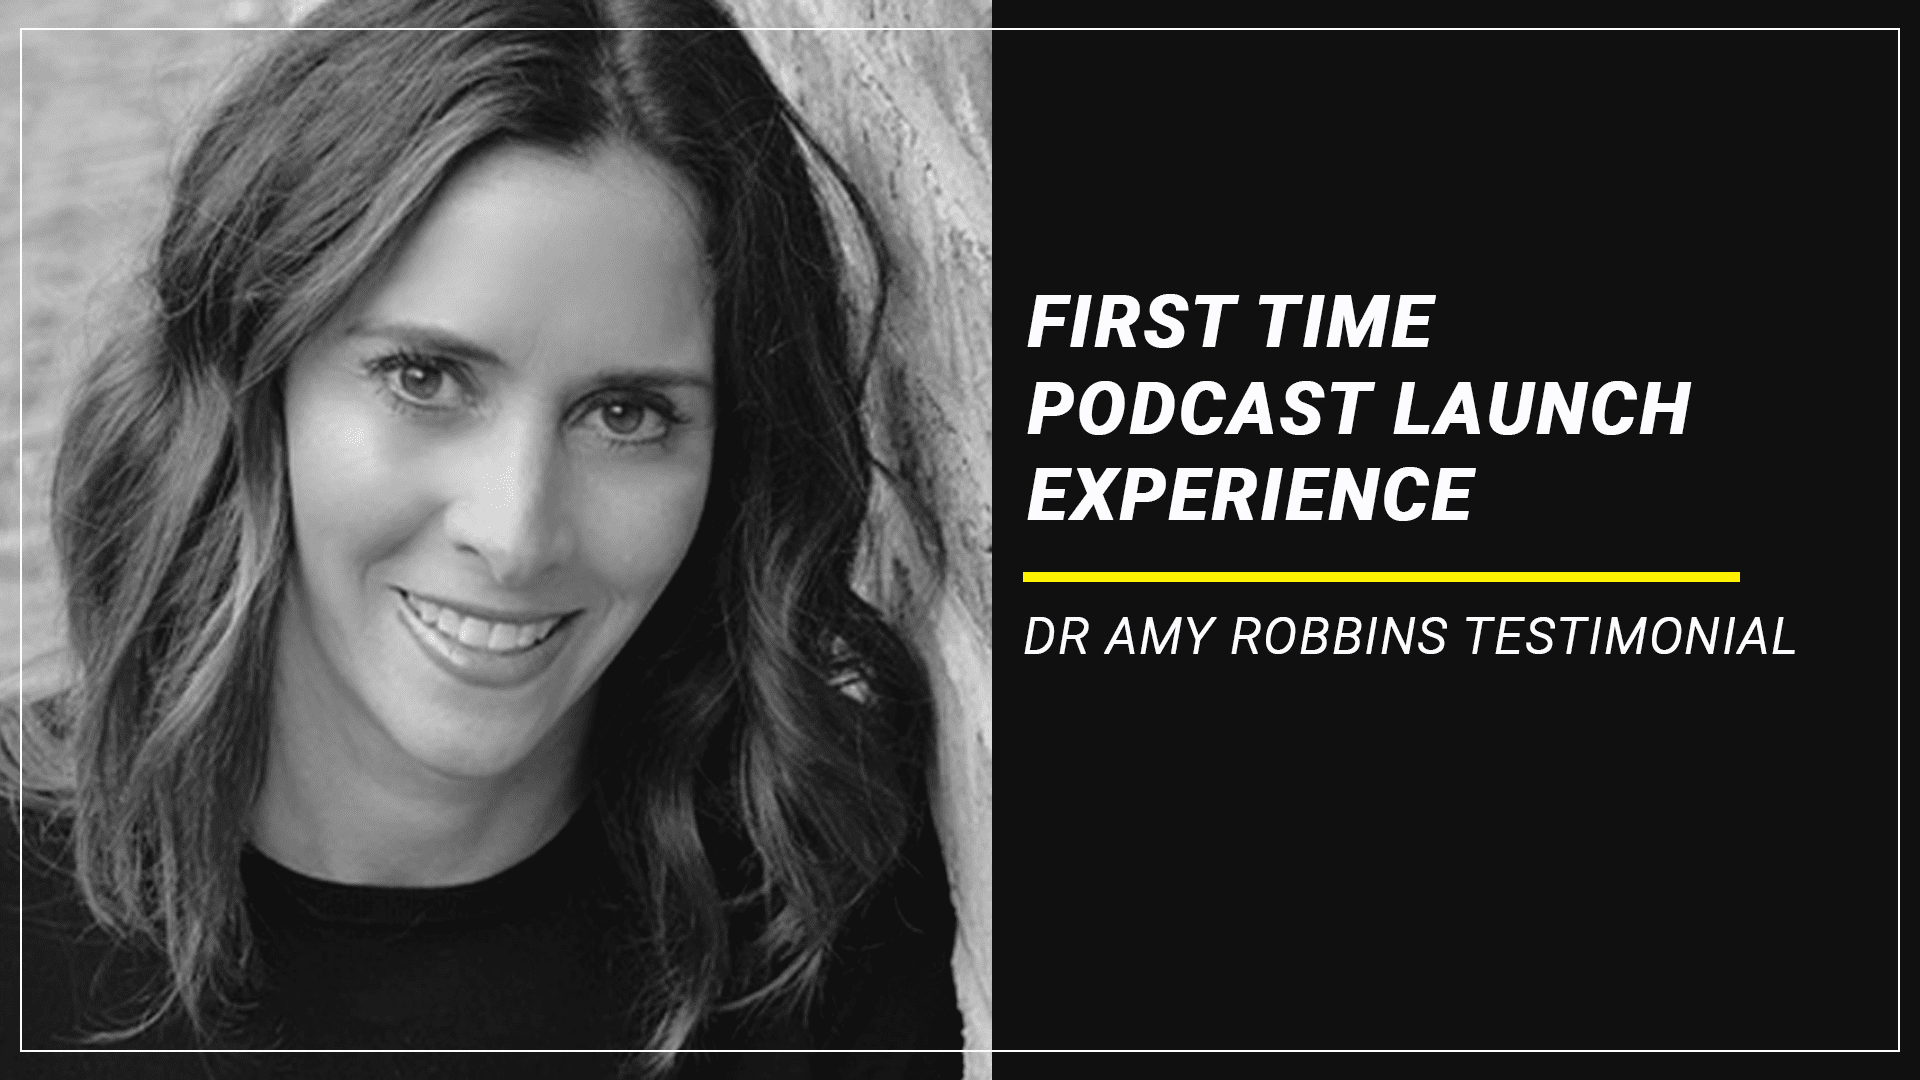 first time podcast launch dr amy robbins